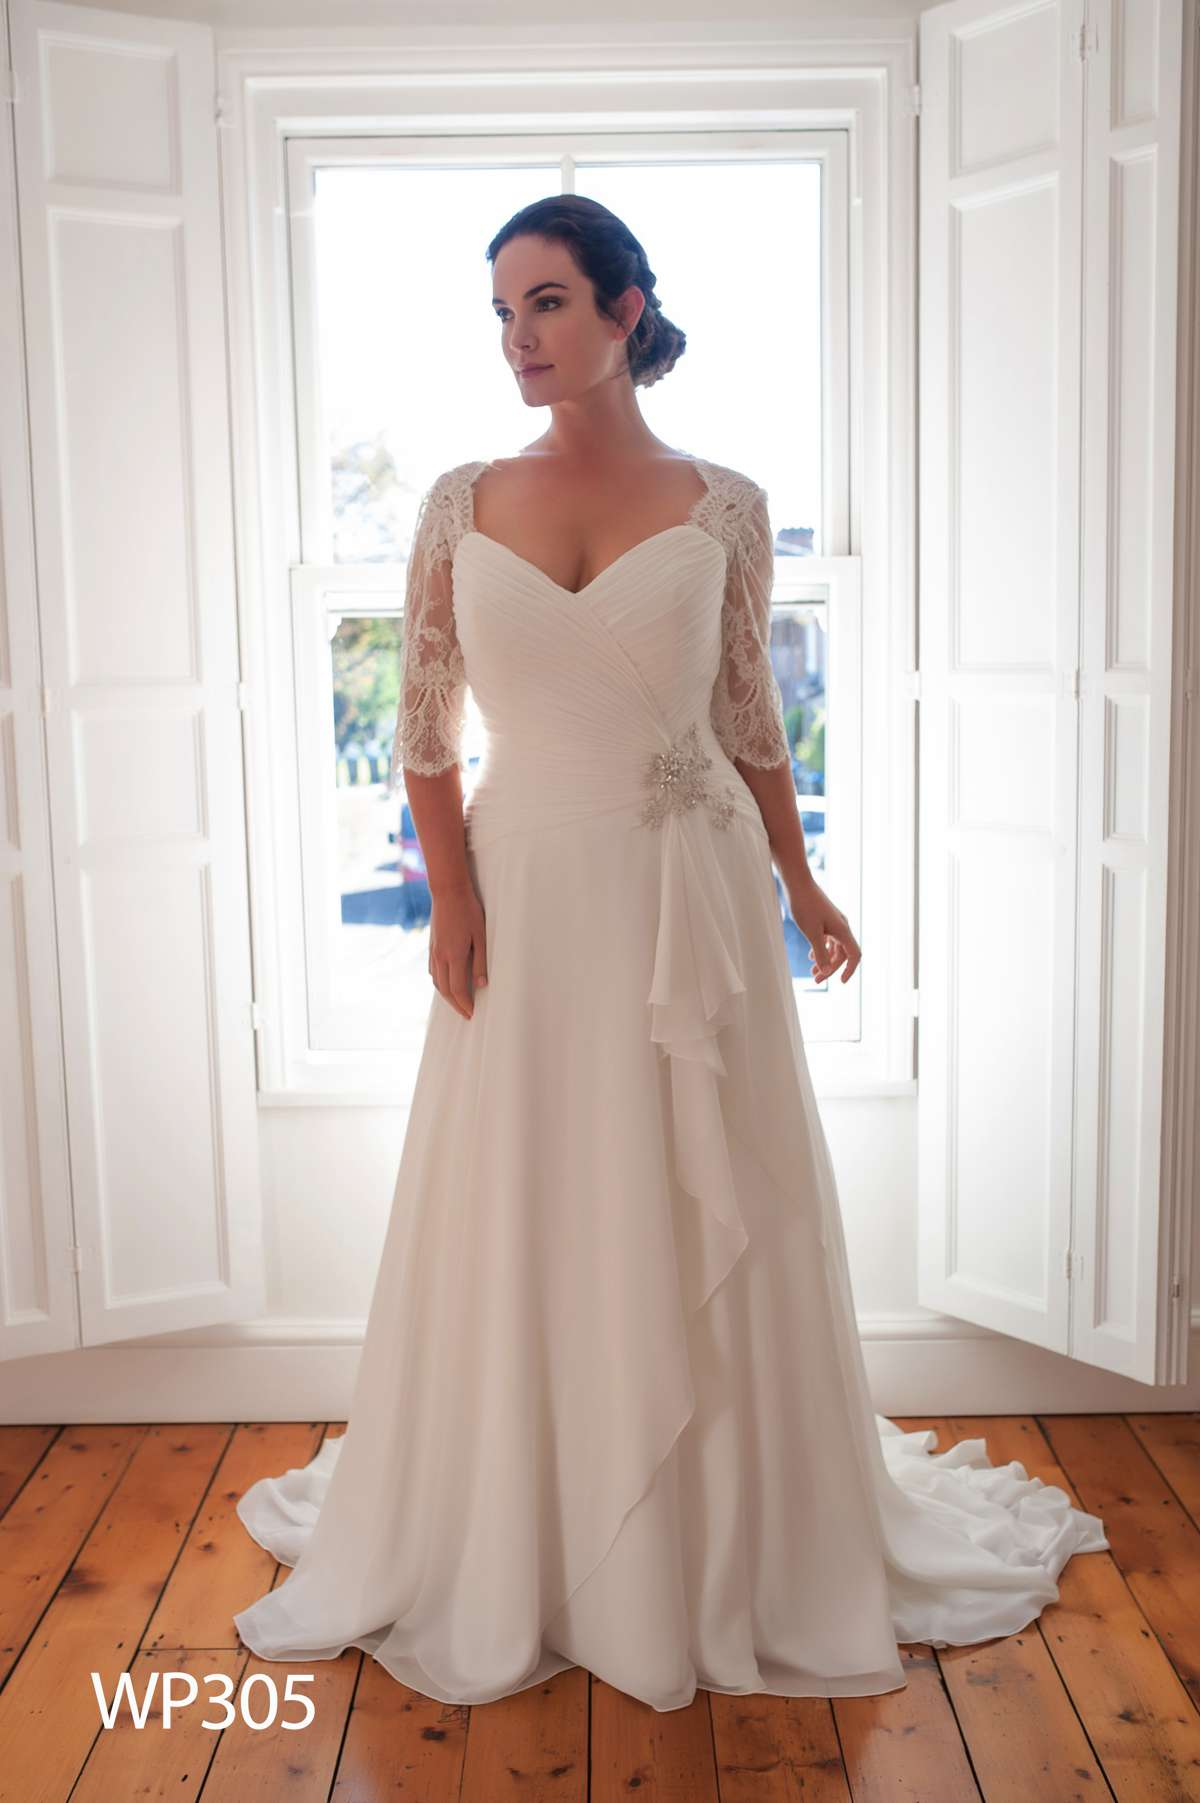 Fine White Rose Bridal Gowns Gallery - Wedding and flowers ...